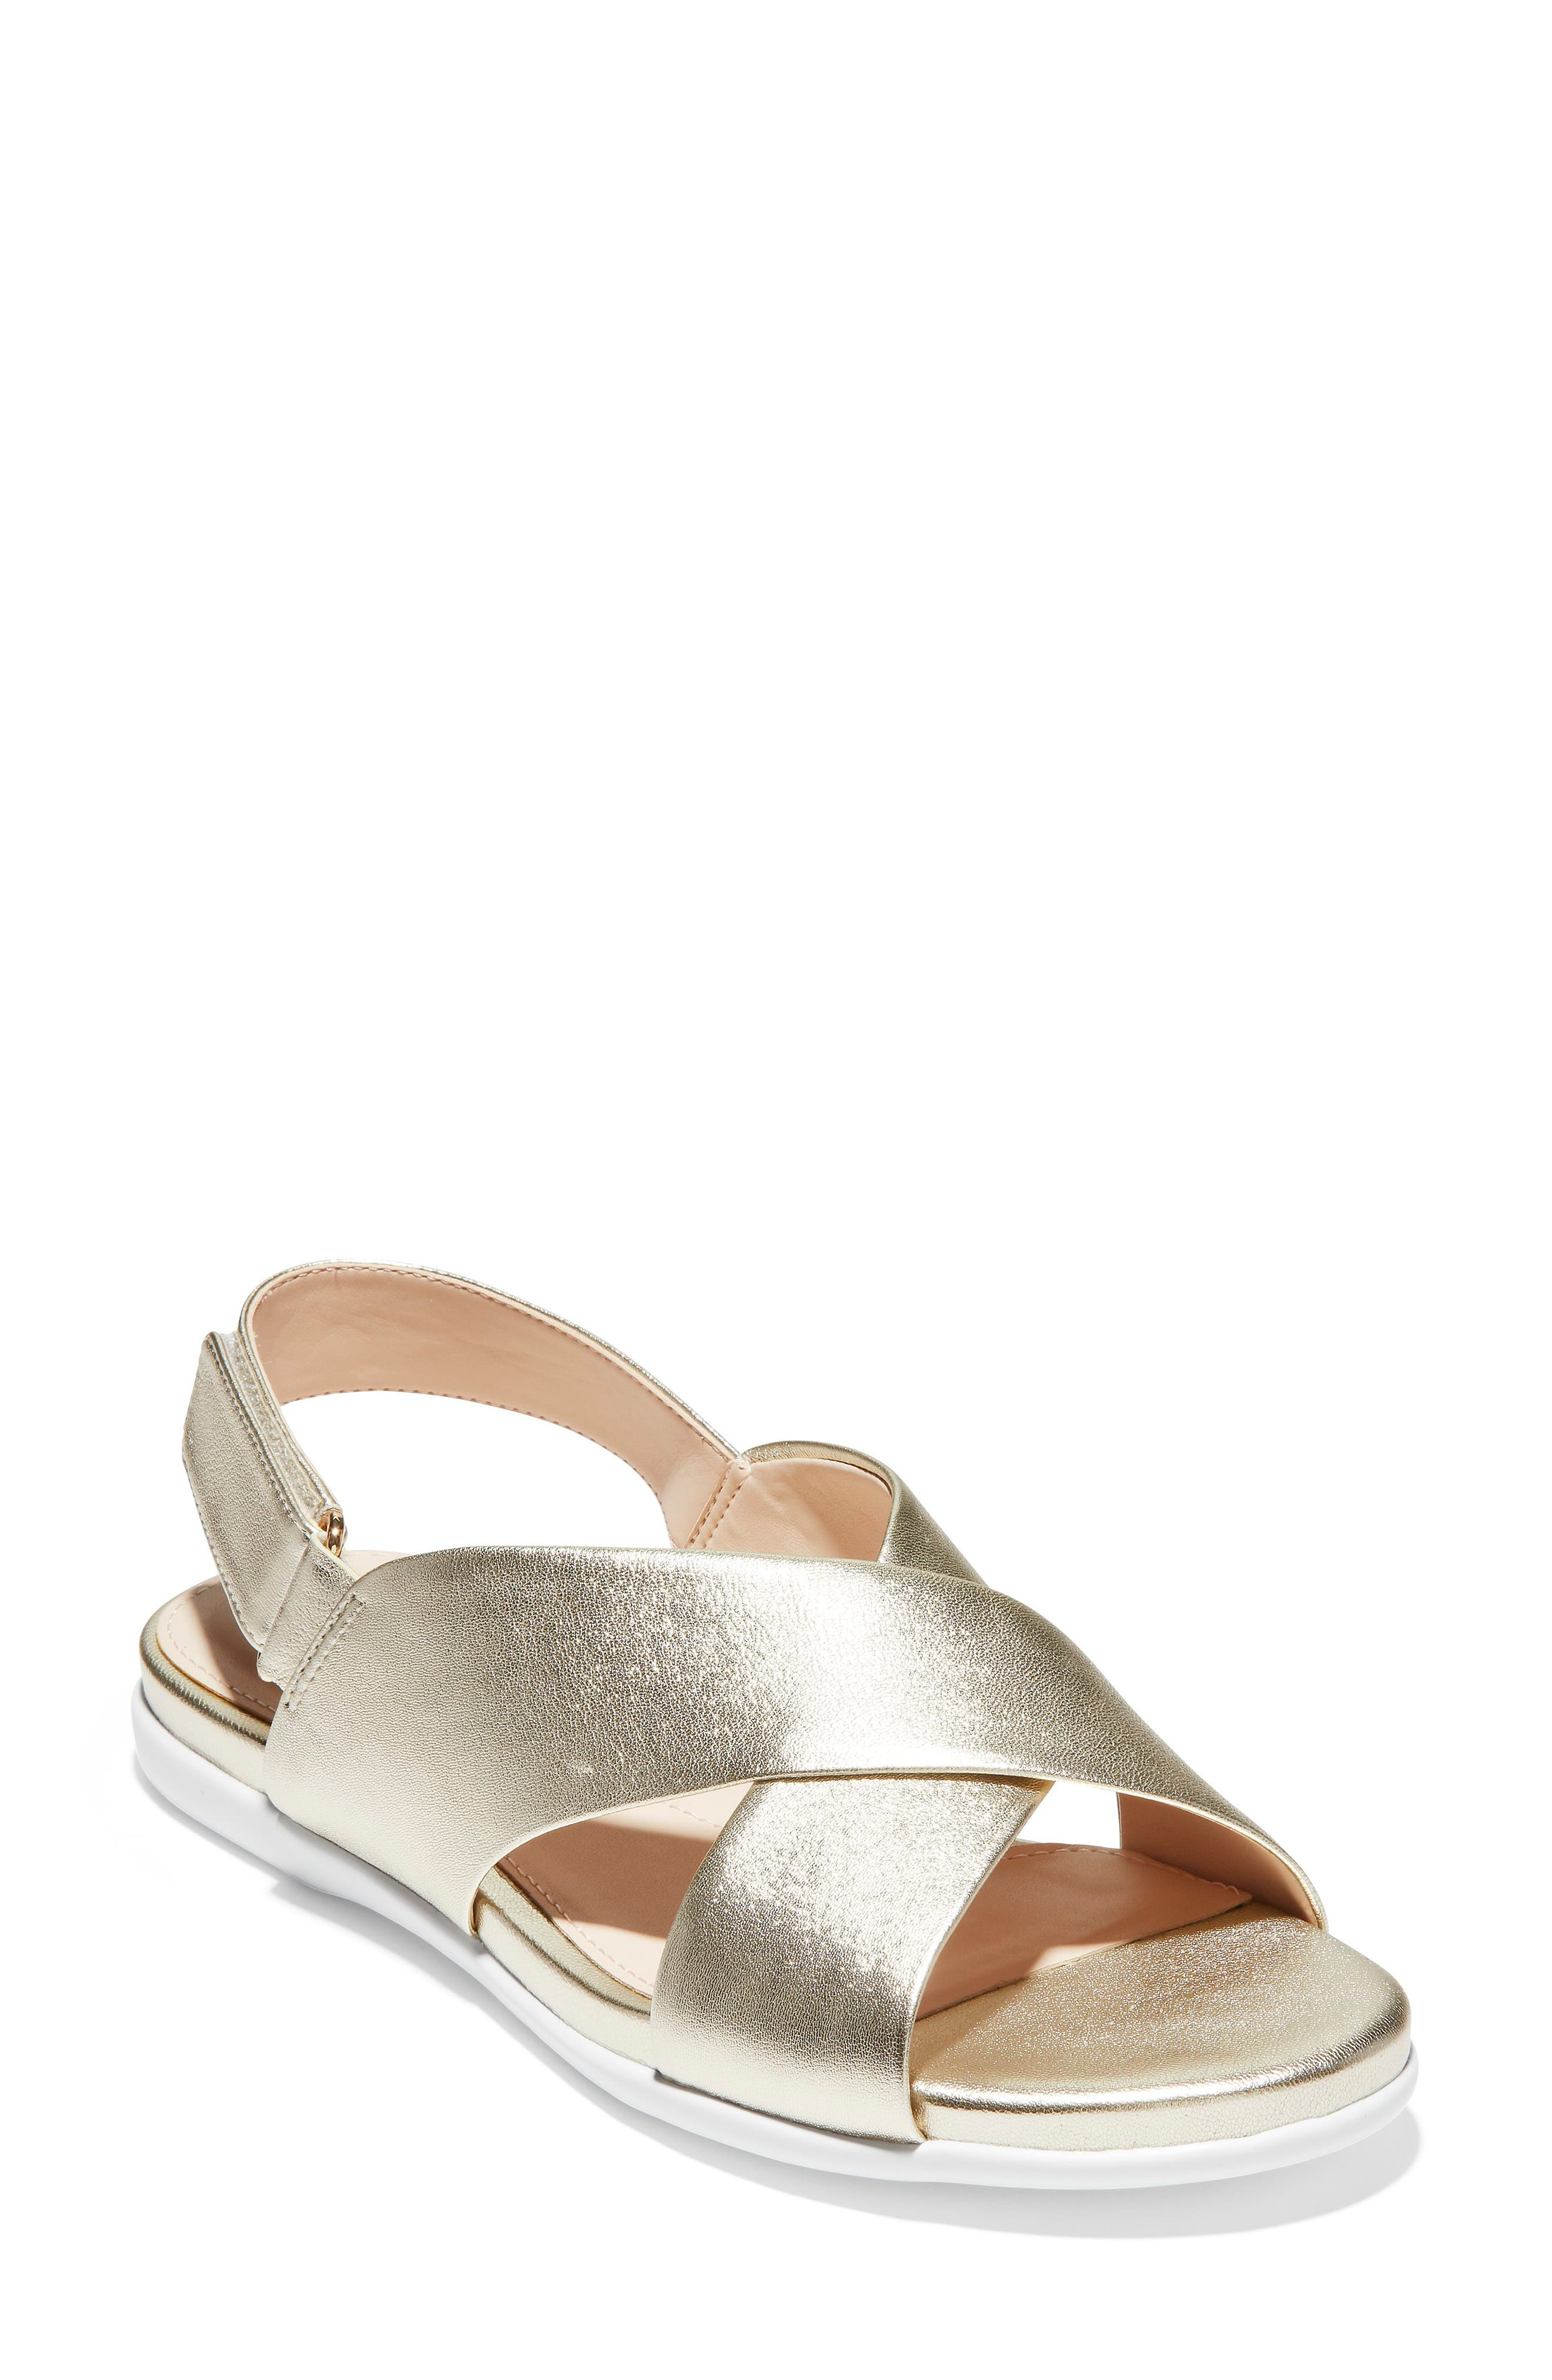 Image of Cole Haan Grand Ambition Sandal